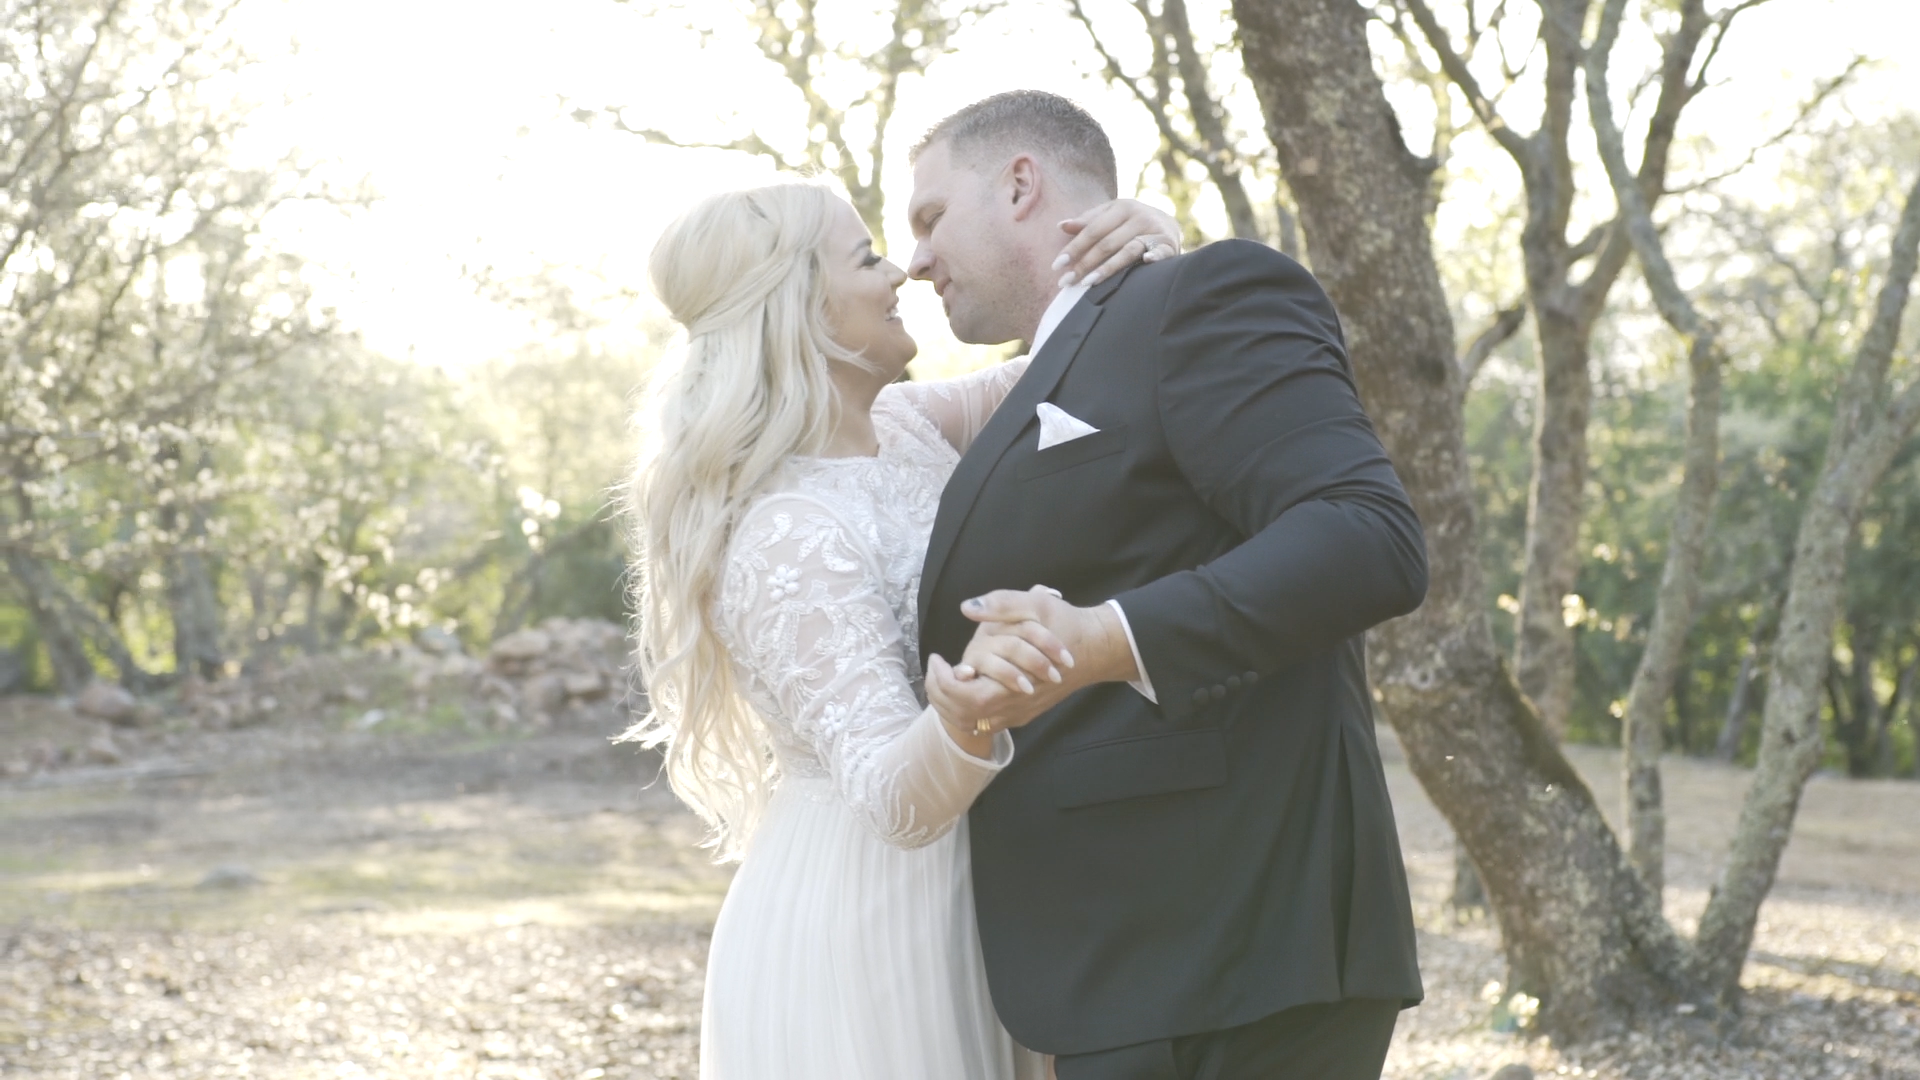 A Bride and Groom Dancing in the woods during their wedding video in Browns Valley, CA